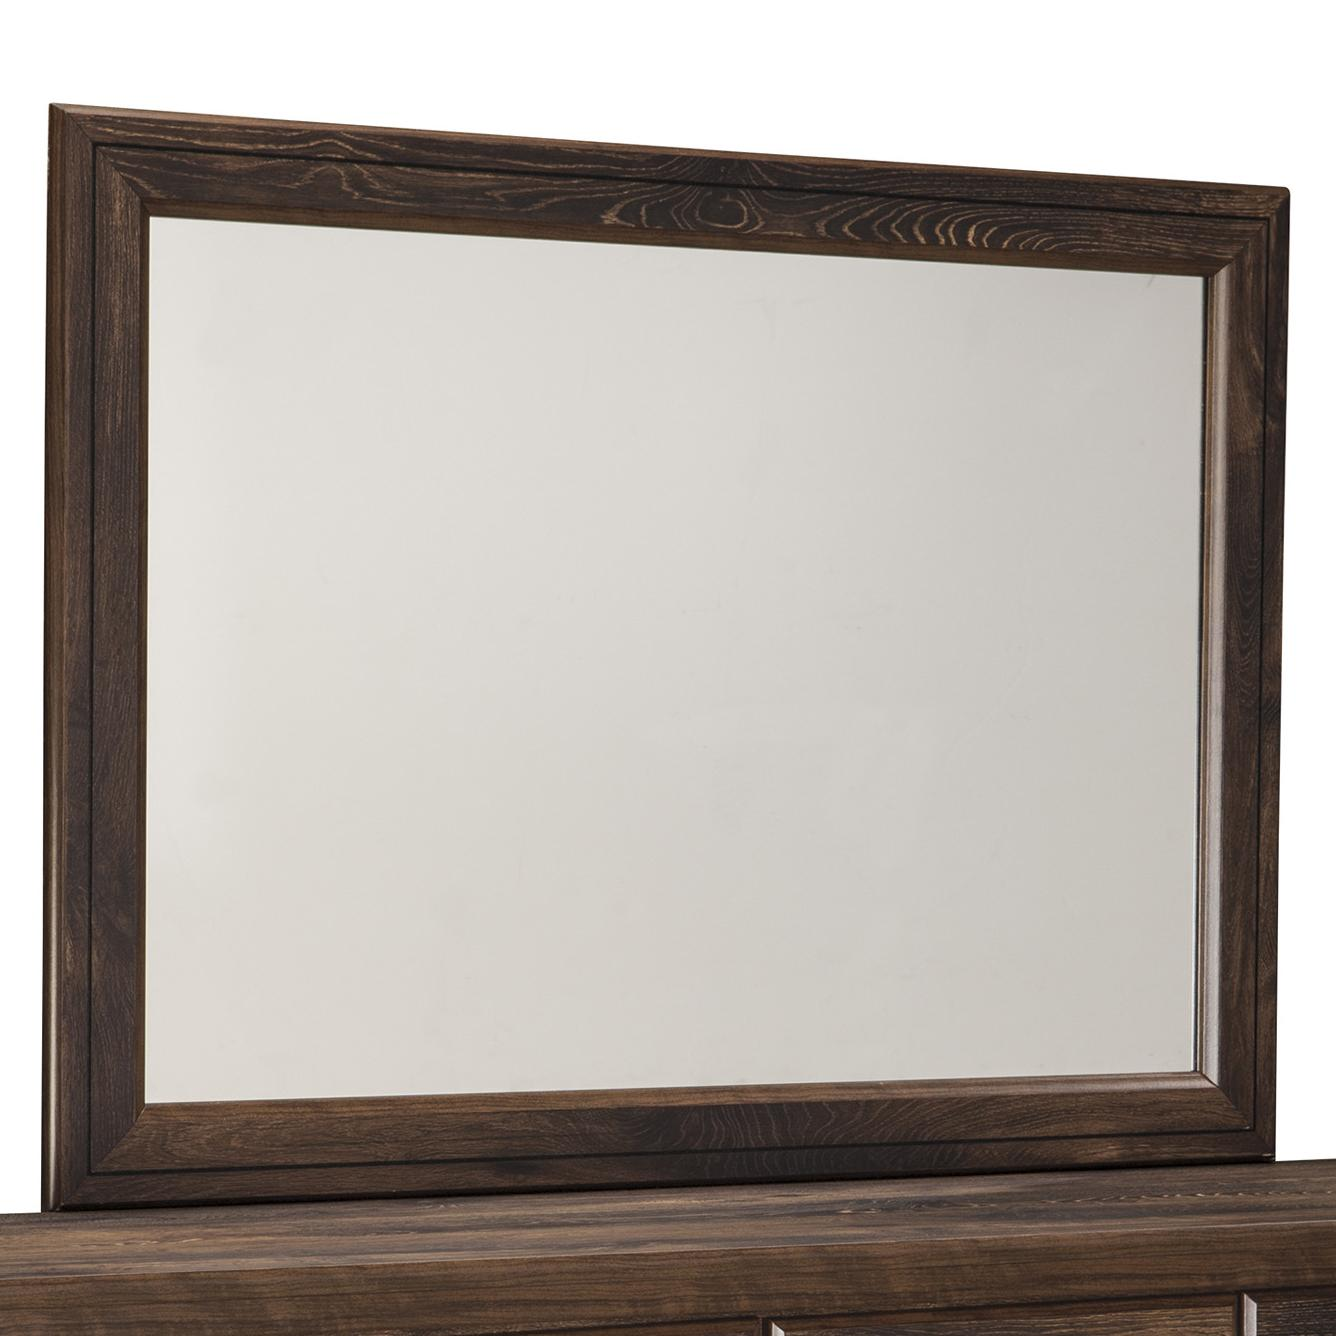 Signature Design by Ashley Quinden Bedroom Mirror - Item Number: B246-36